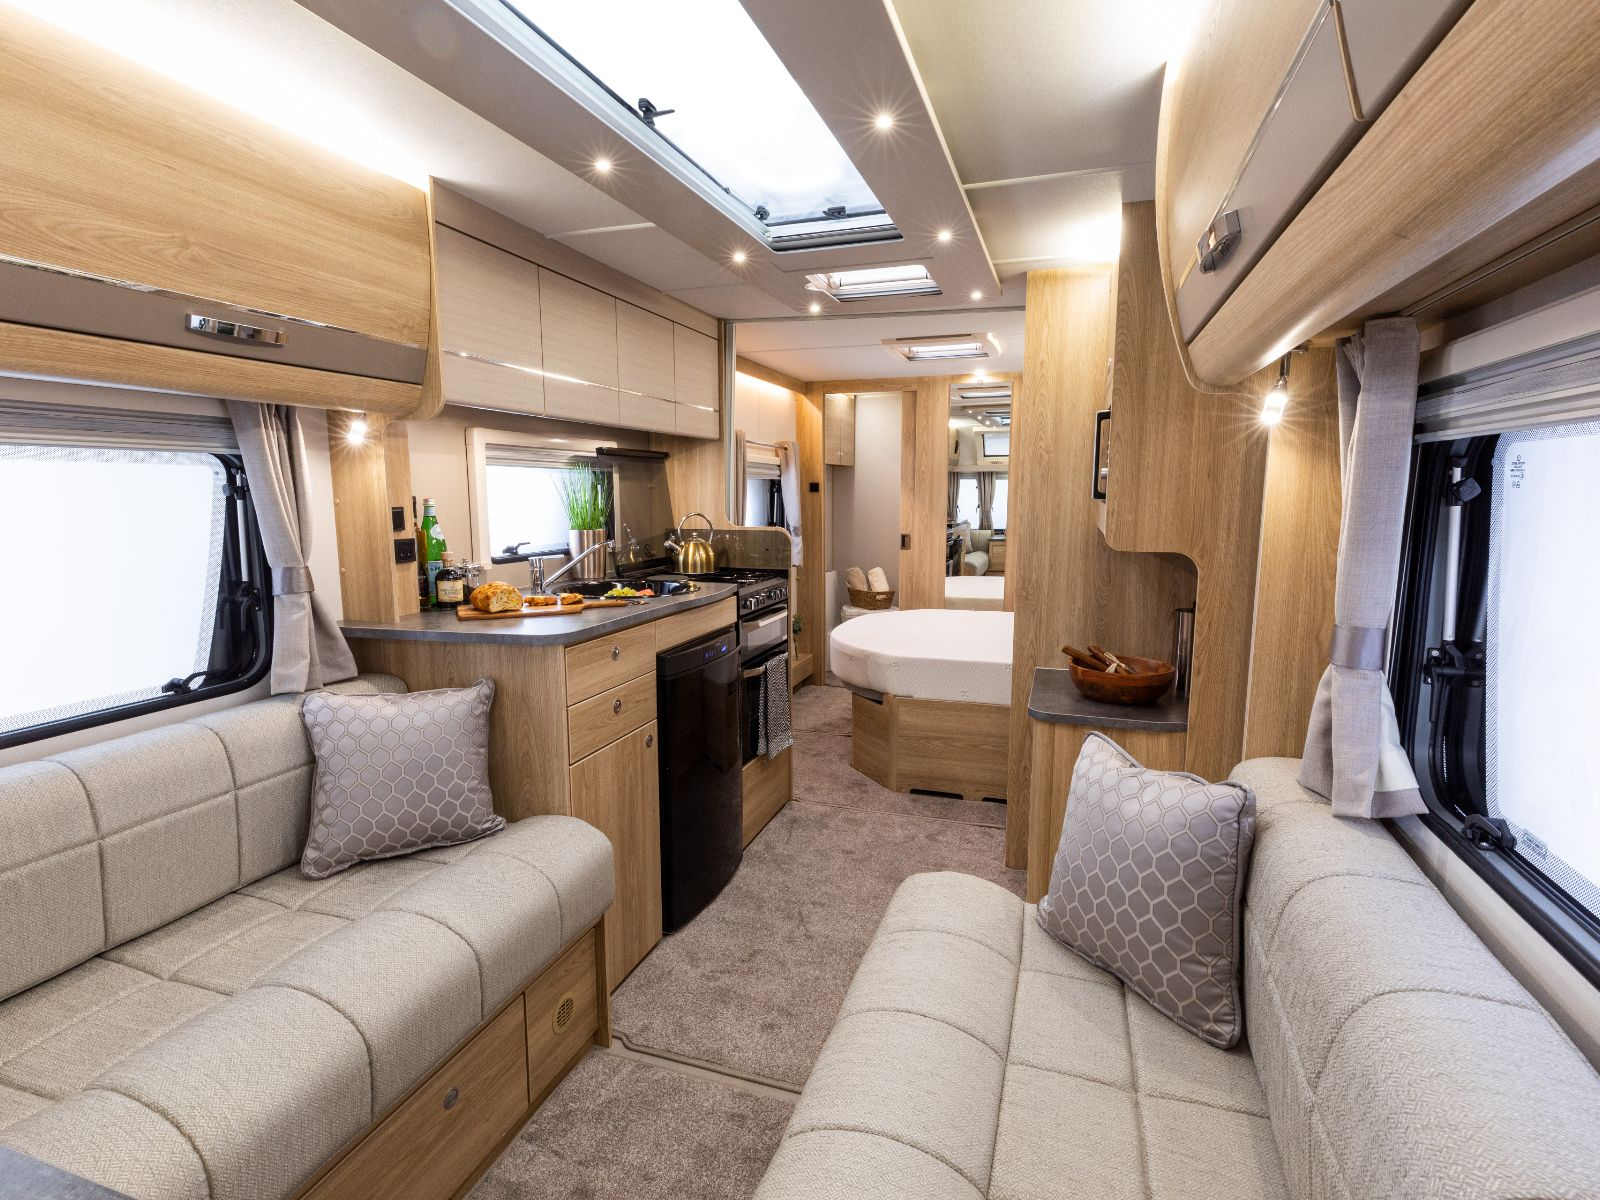 Sherwood Caravans Lounge Area with Kitchen and Bedroom View Featuring Double Bed'